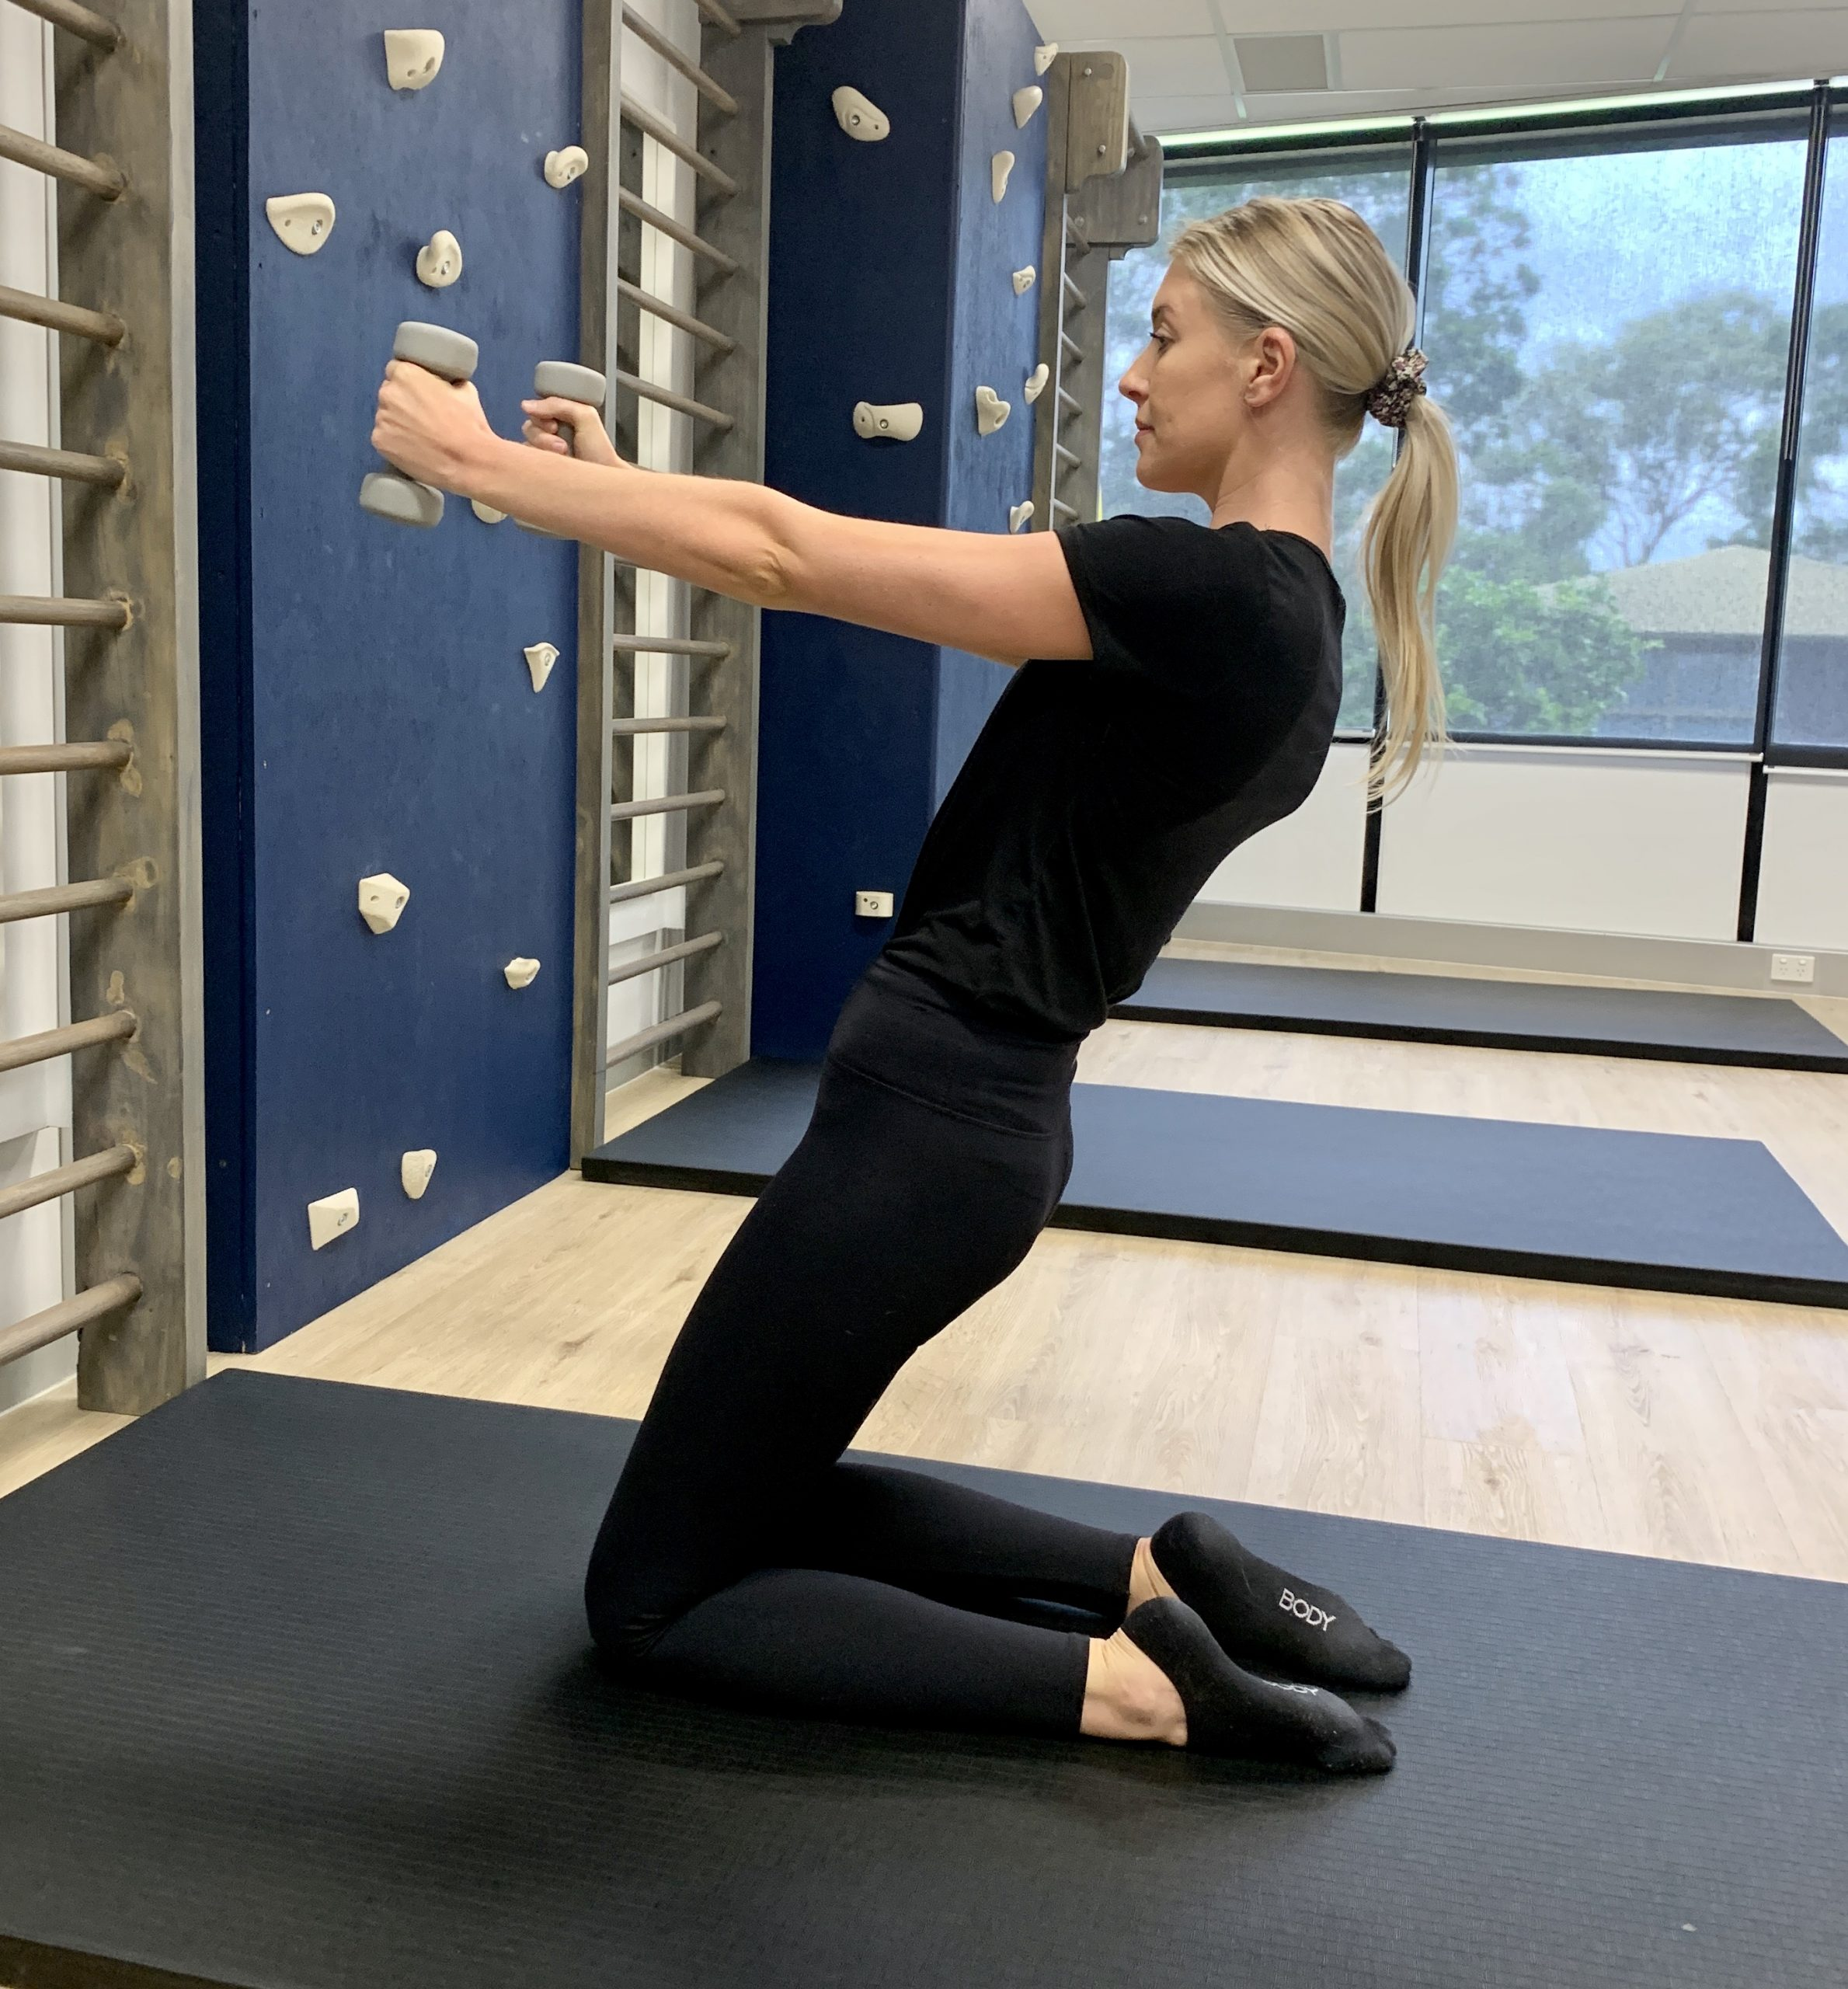 pilates instructor performing a core exercise